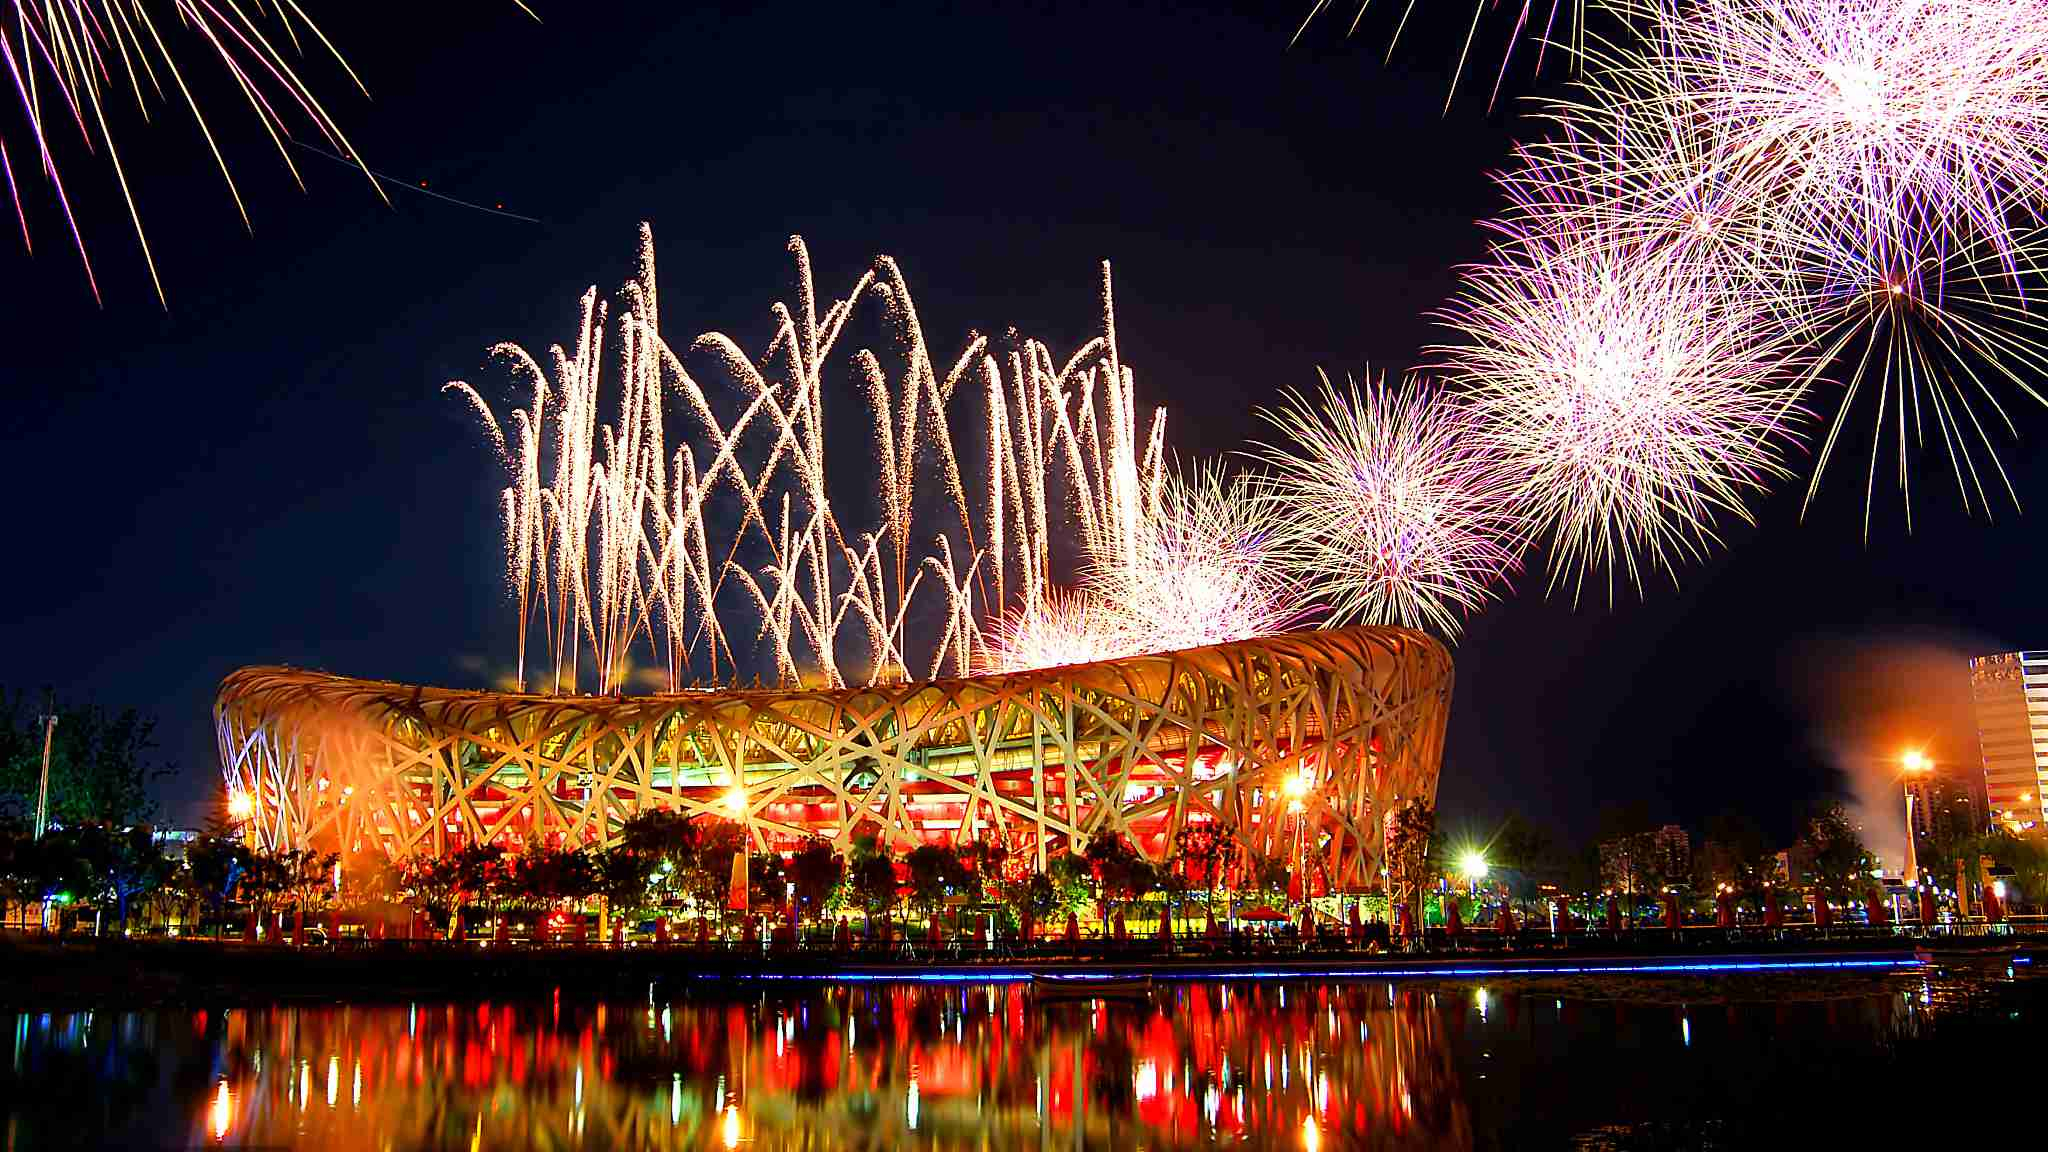 From 2008 to 2022: Olympic-themed exhibition to open in Beijing